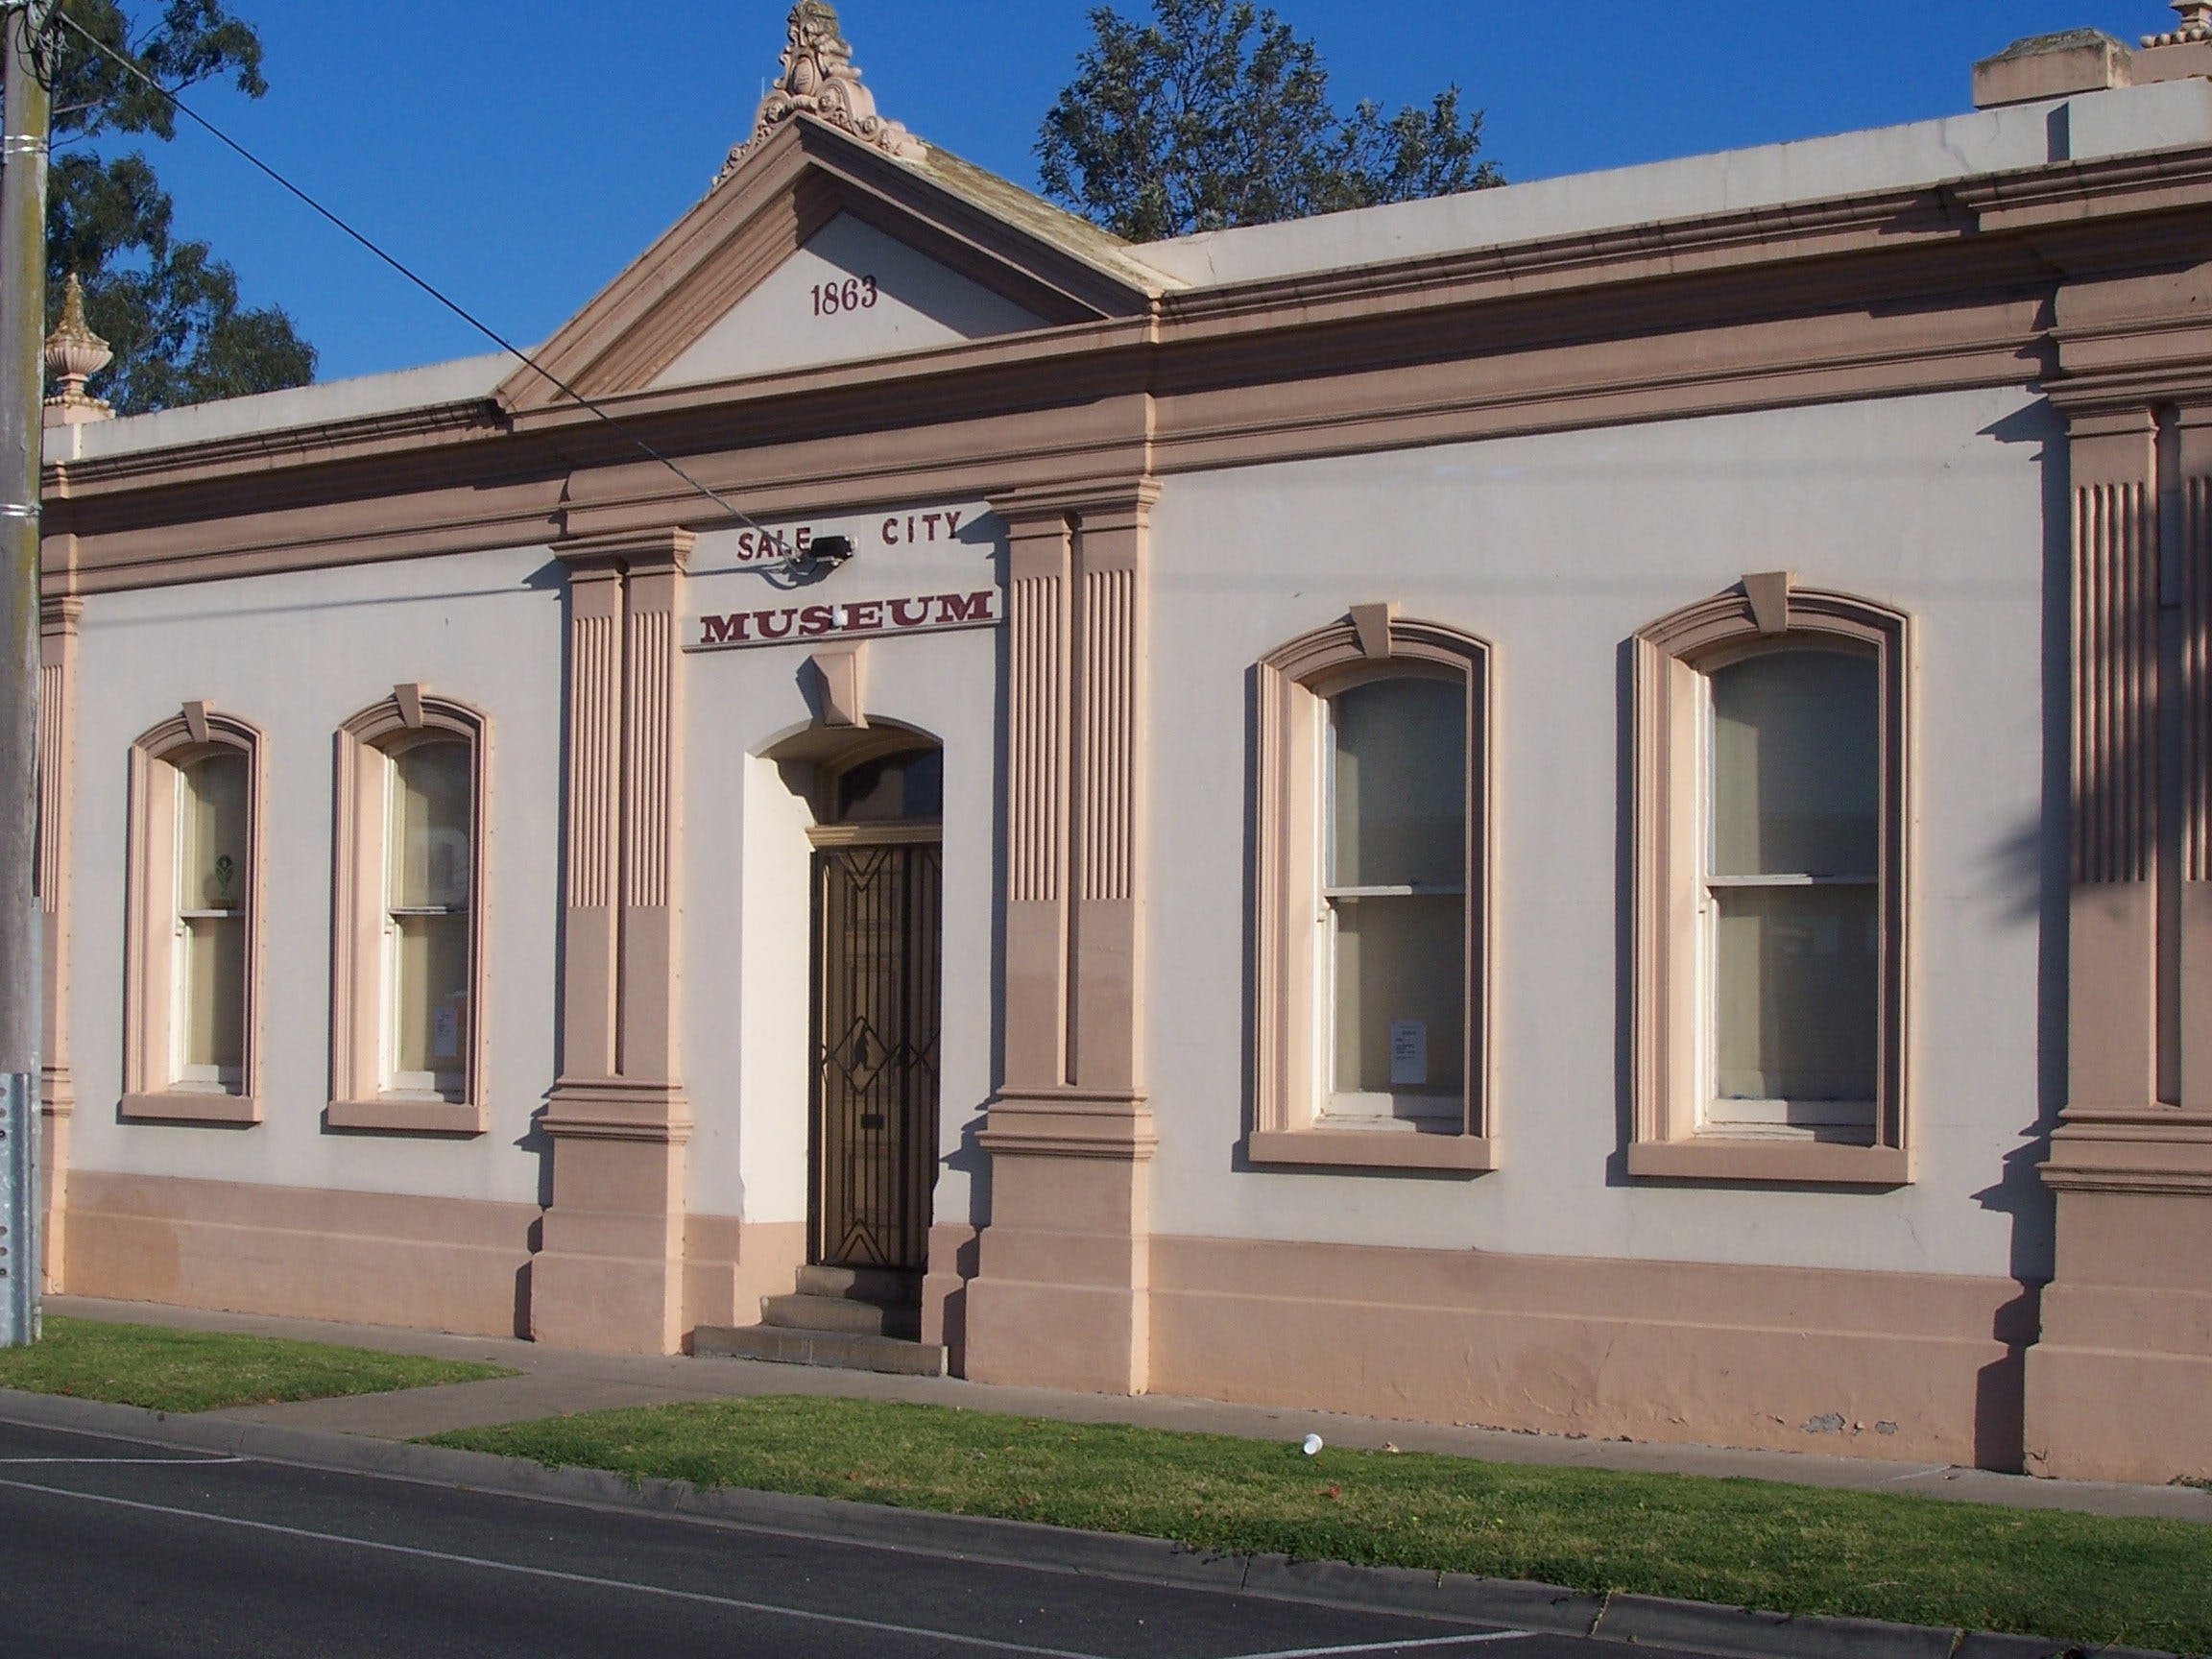 Sale Historical Museum - Find Attractions